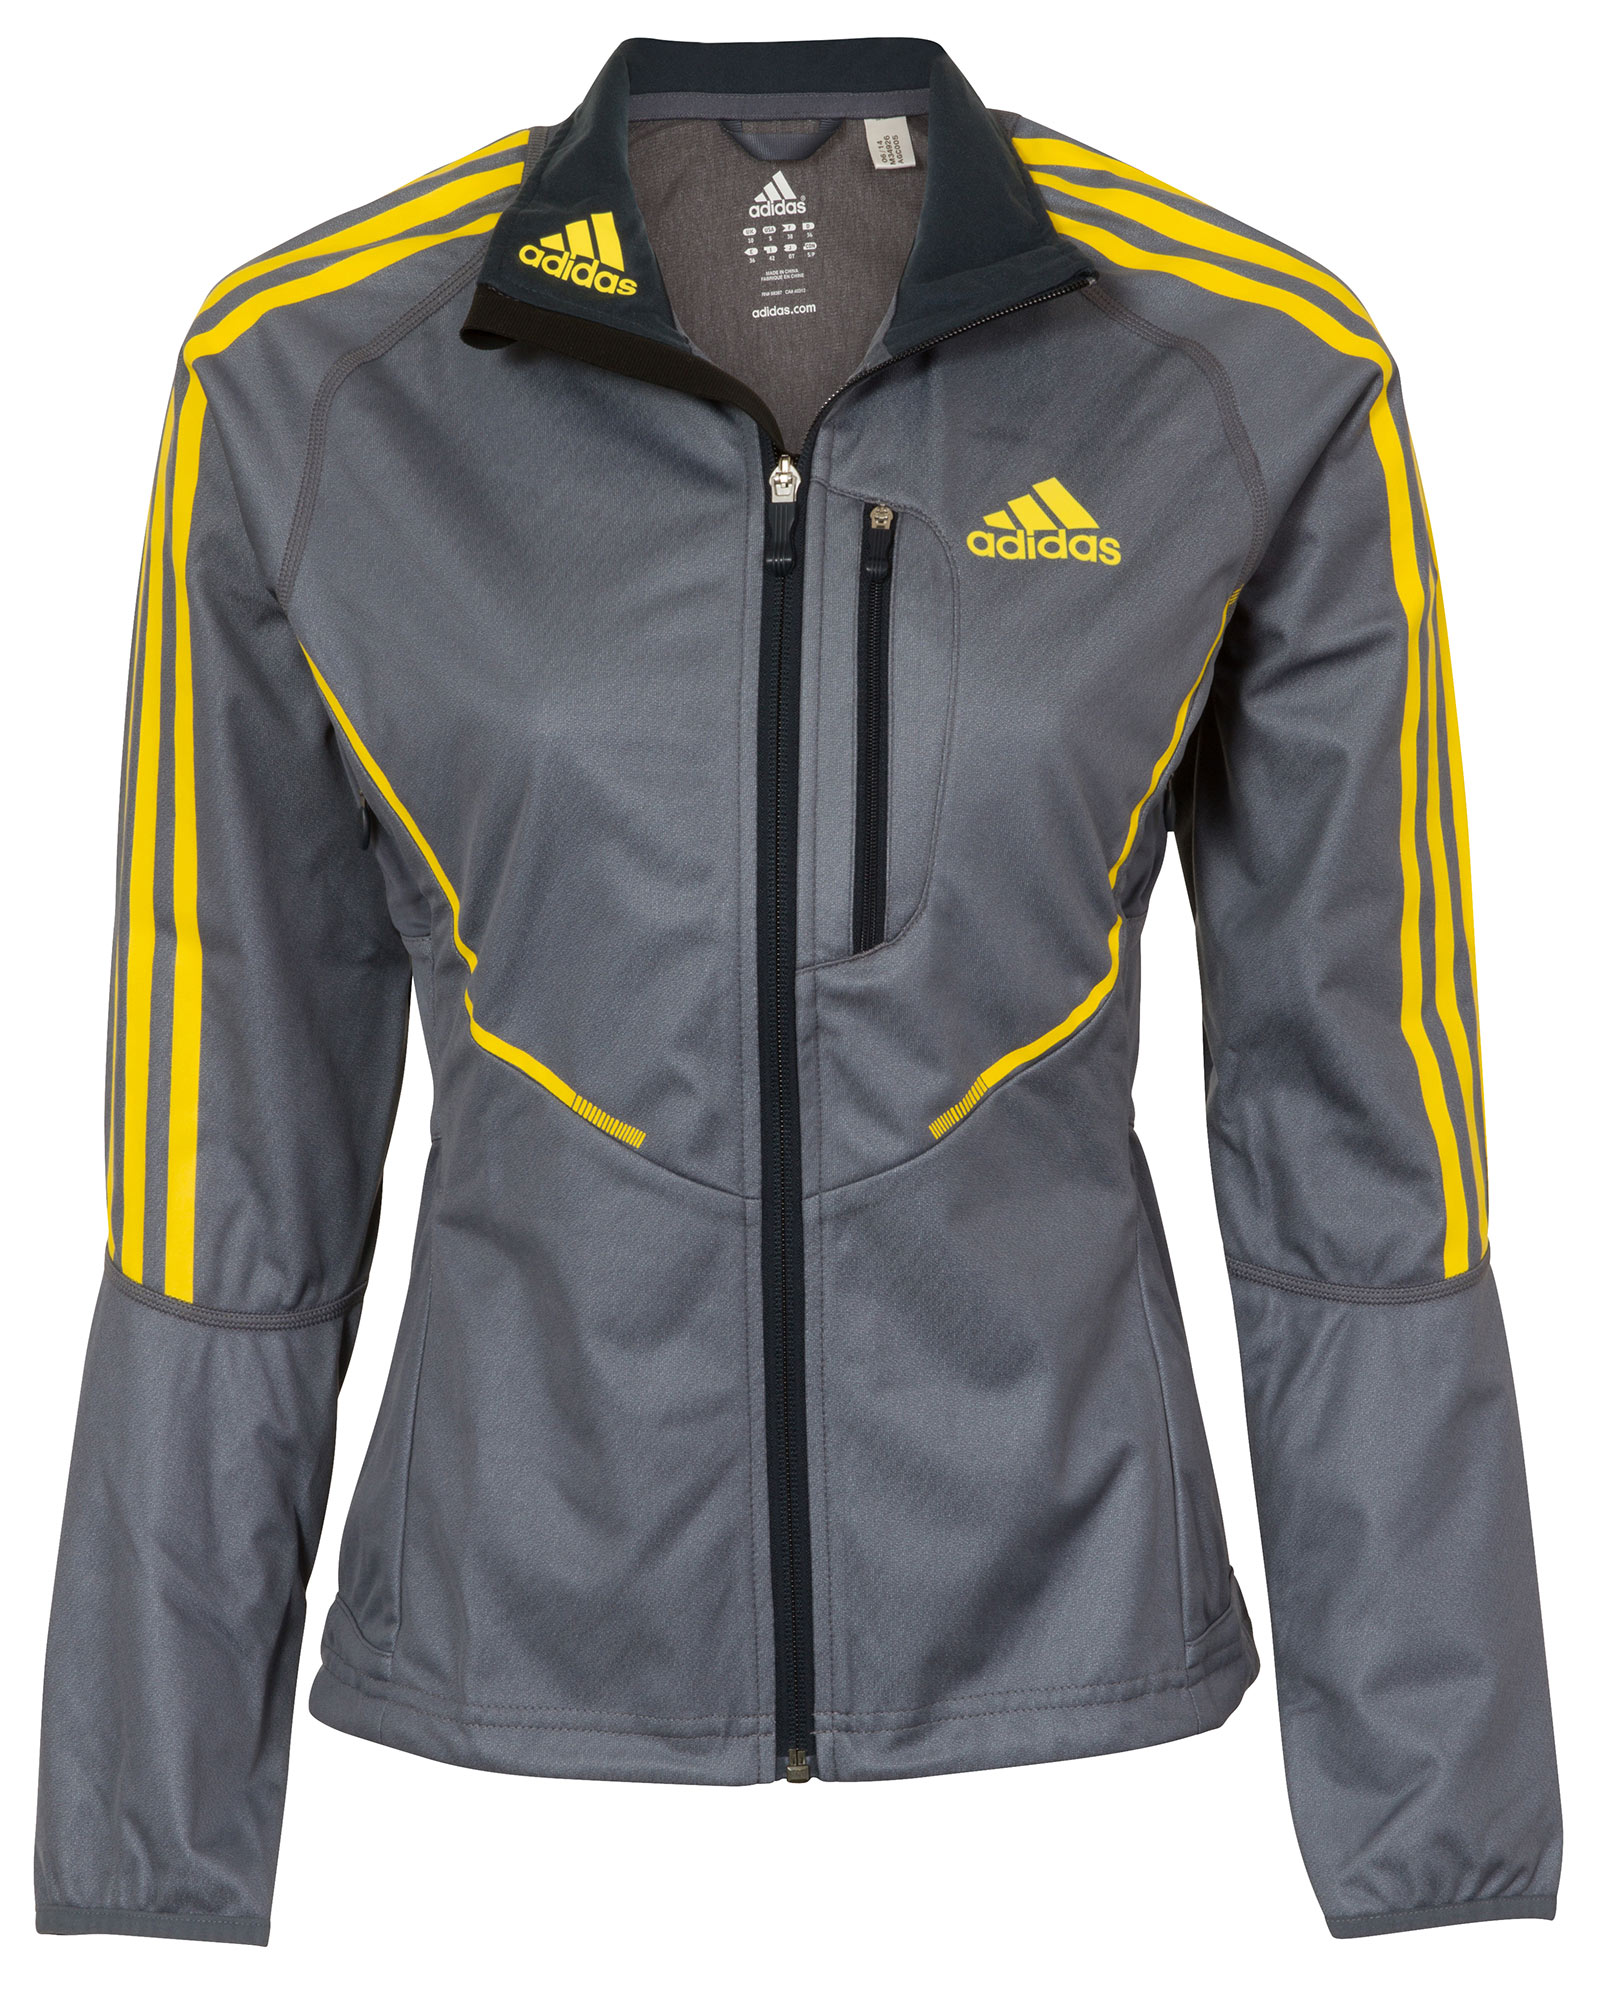 Details about adidas Athletics ClimaWarm Windstopper Womens Cross Country Jacket UK Size 6